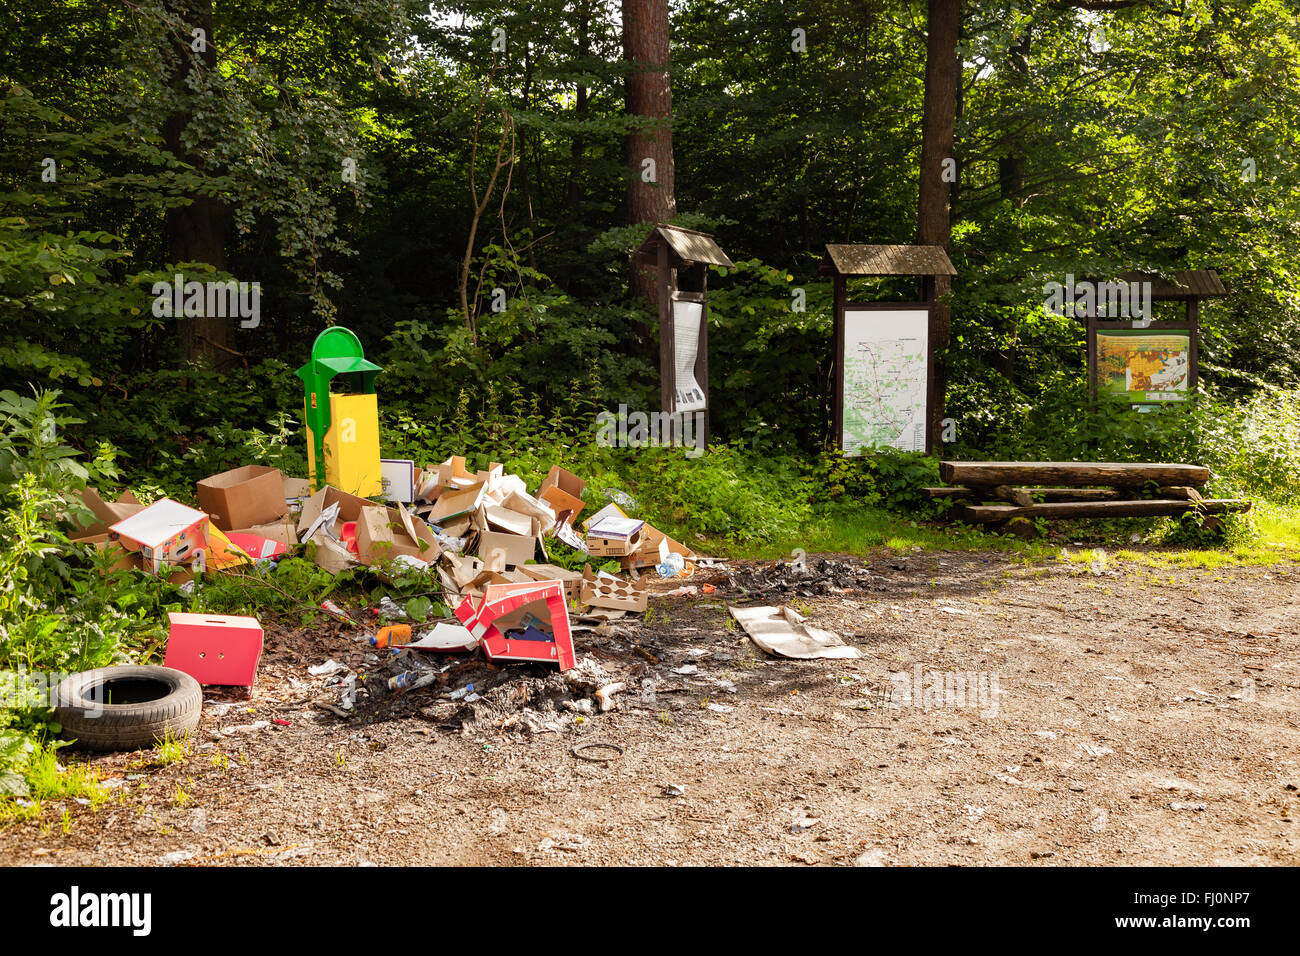 Illegal dump in forest - environment pollution. - Stock Image